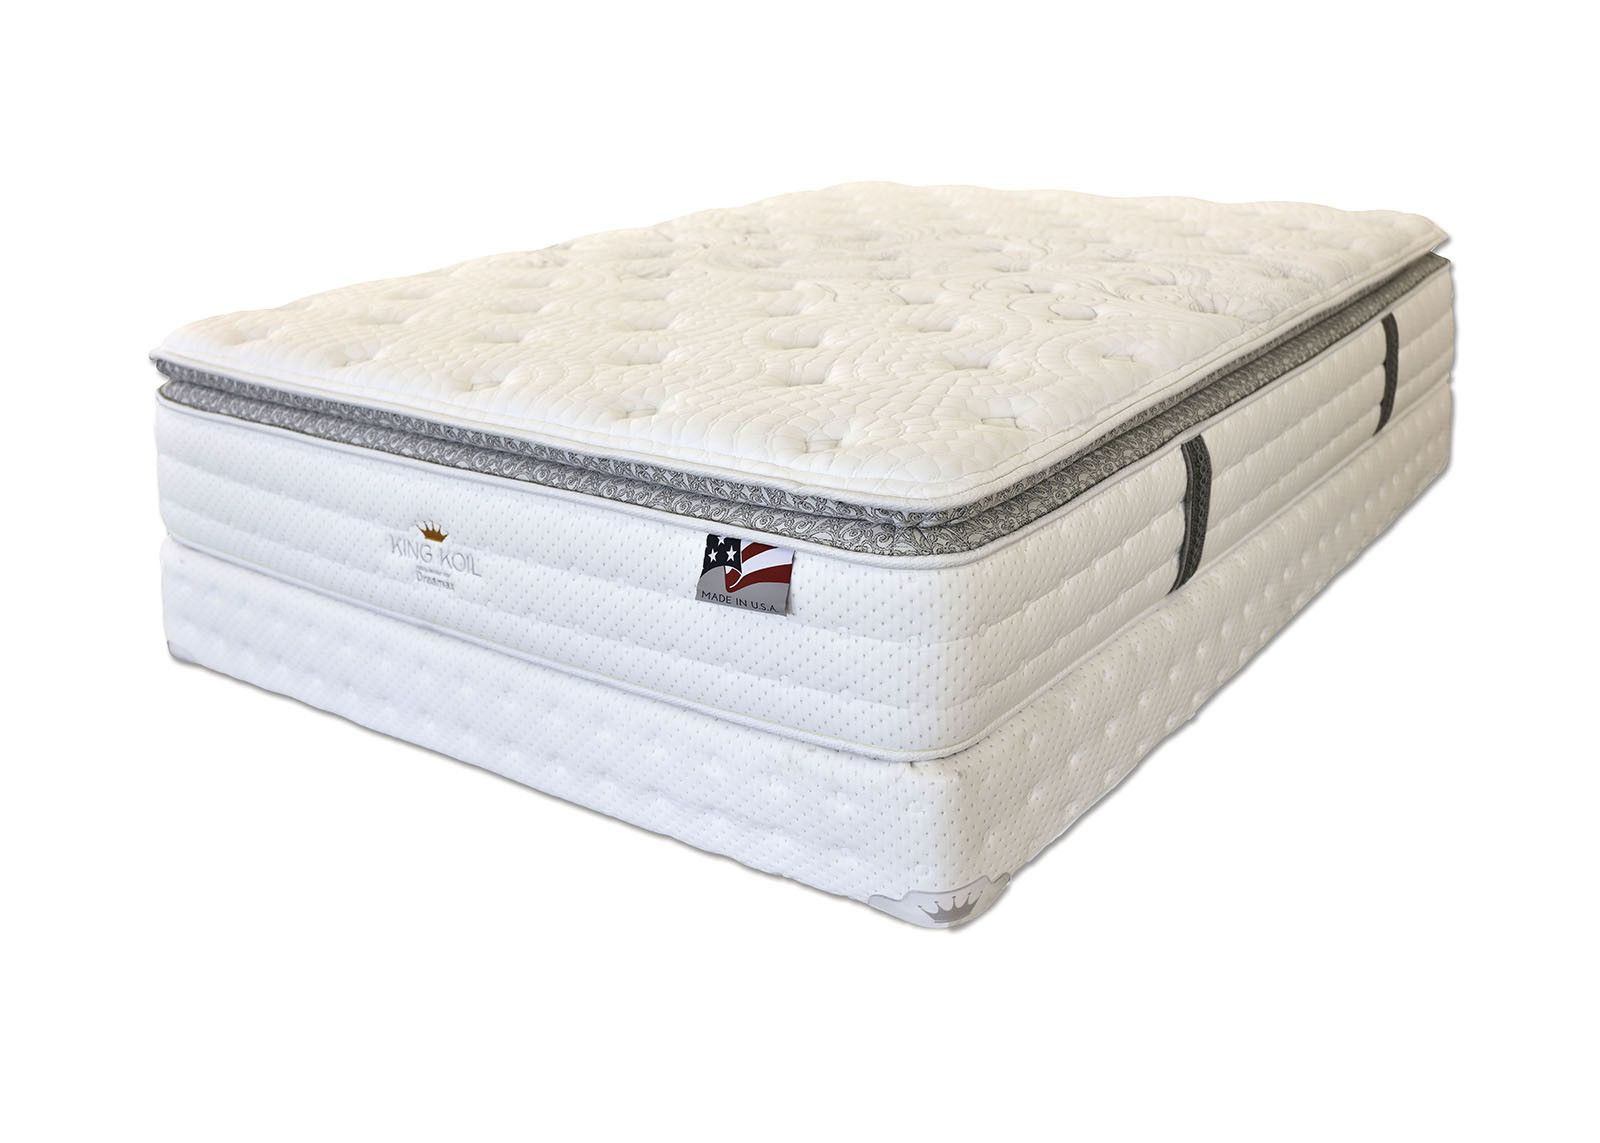 alyssum ii pillow top full size mattress dm156fdescription pillow